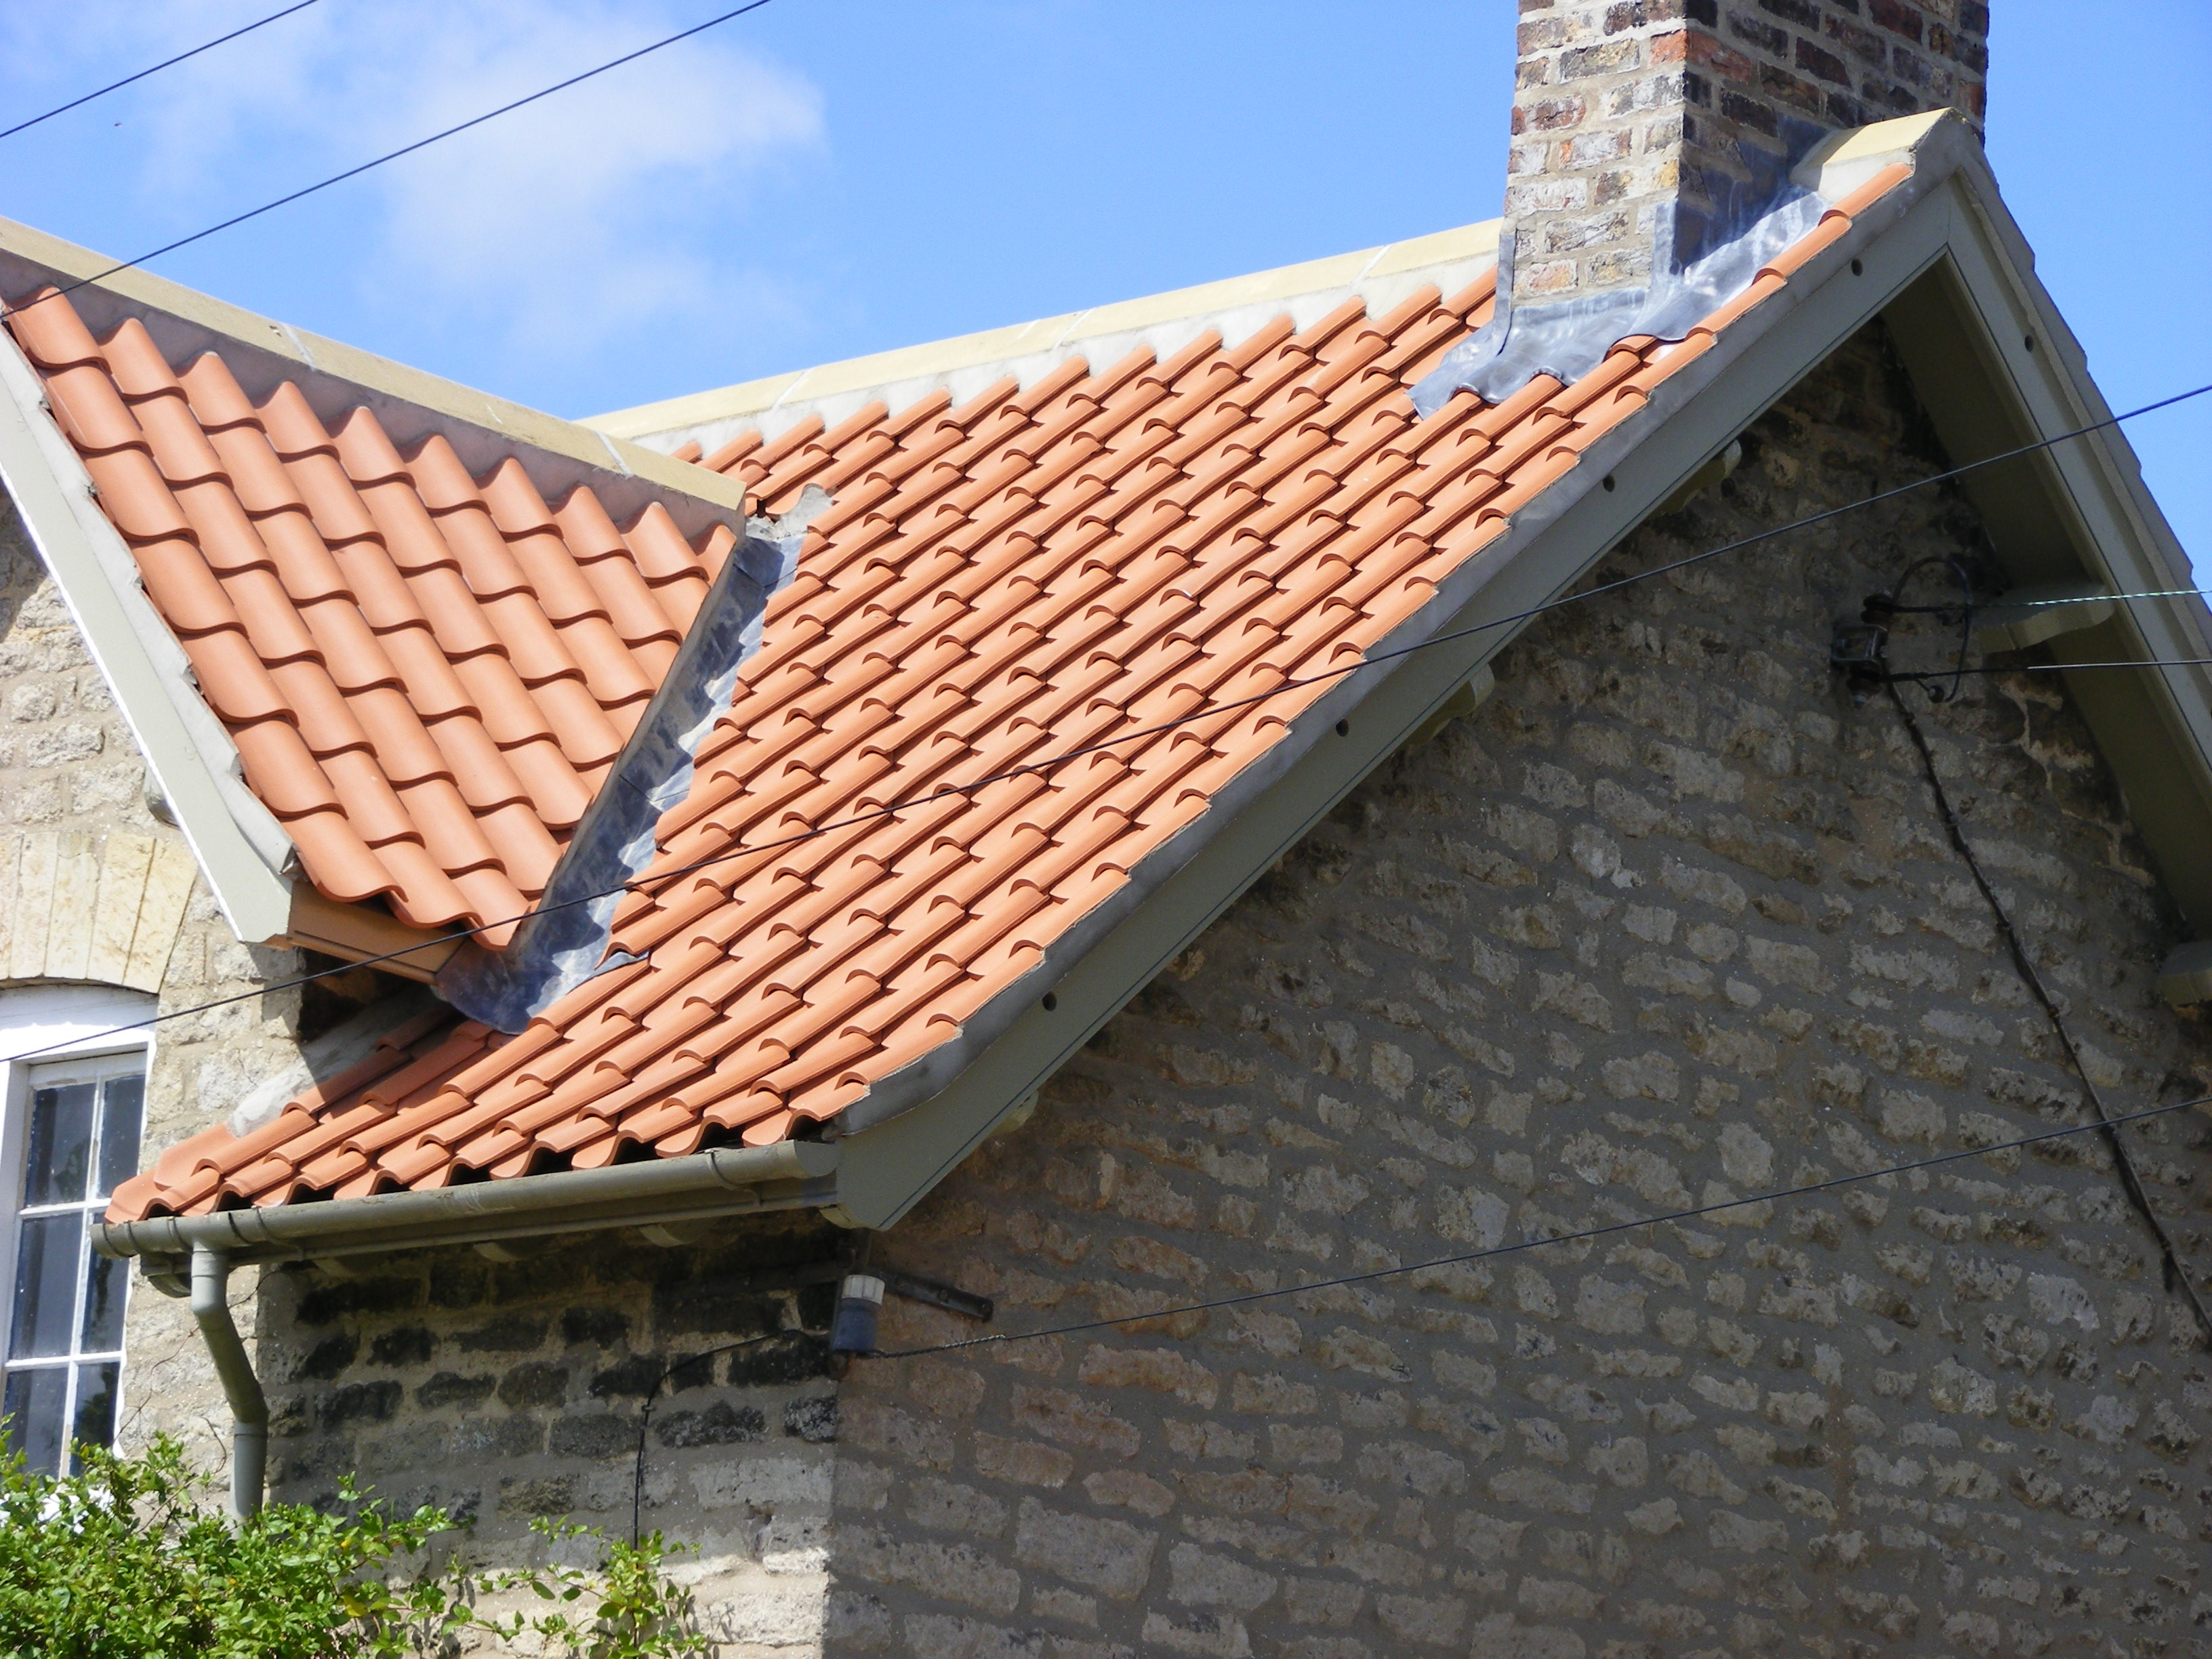 Pitched Roofing Peter Dodds Roofing Maintenance Ltd